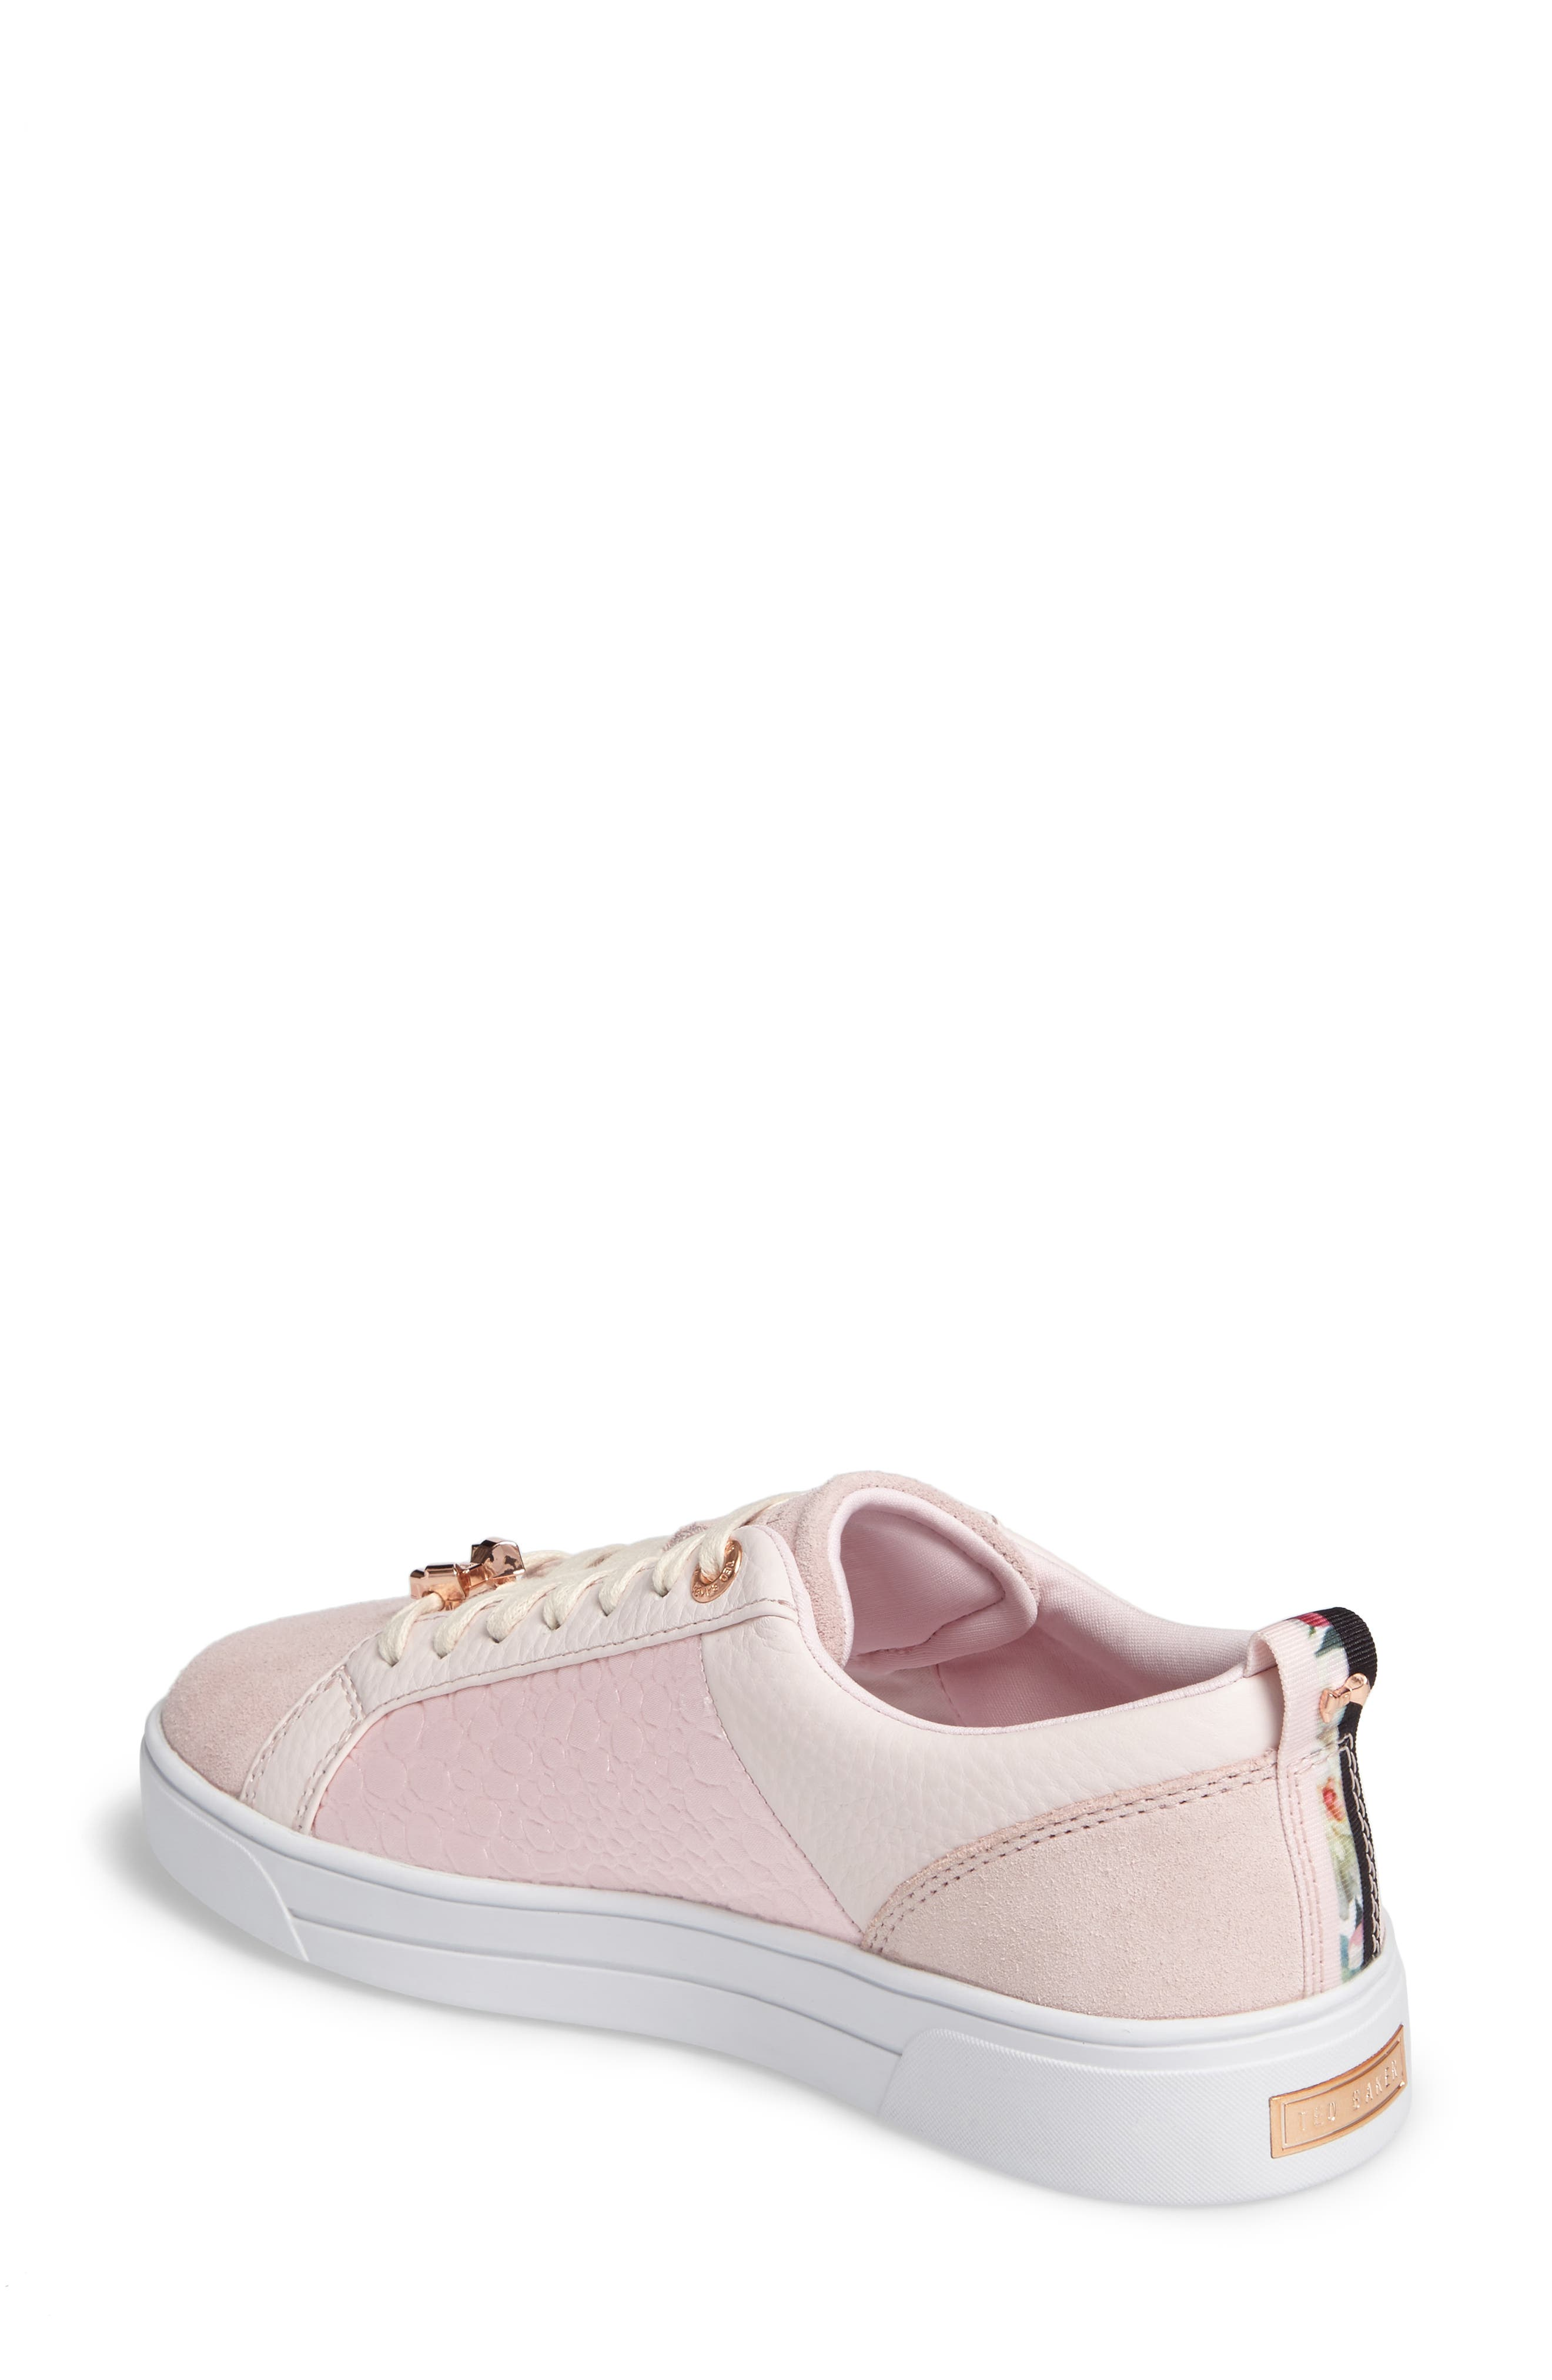 Kulei Sneaker,                             Alternate thumbnail 2, color,                             Light Pink Leather